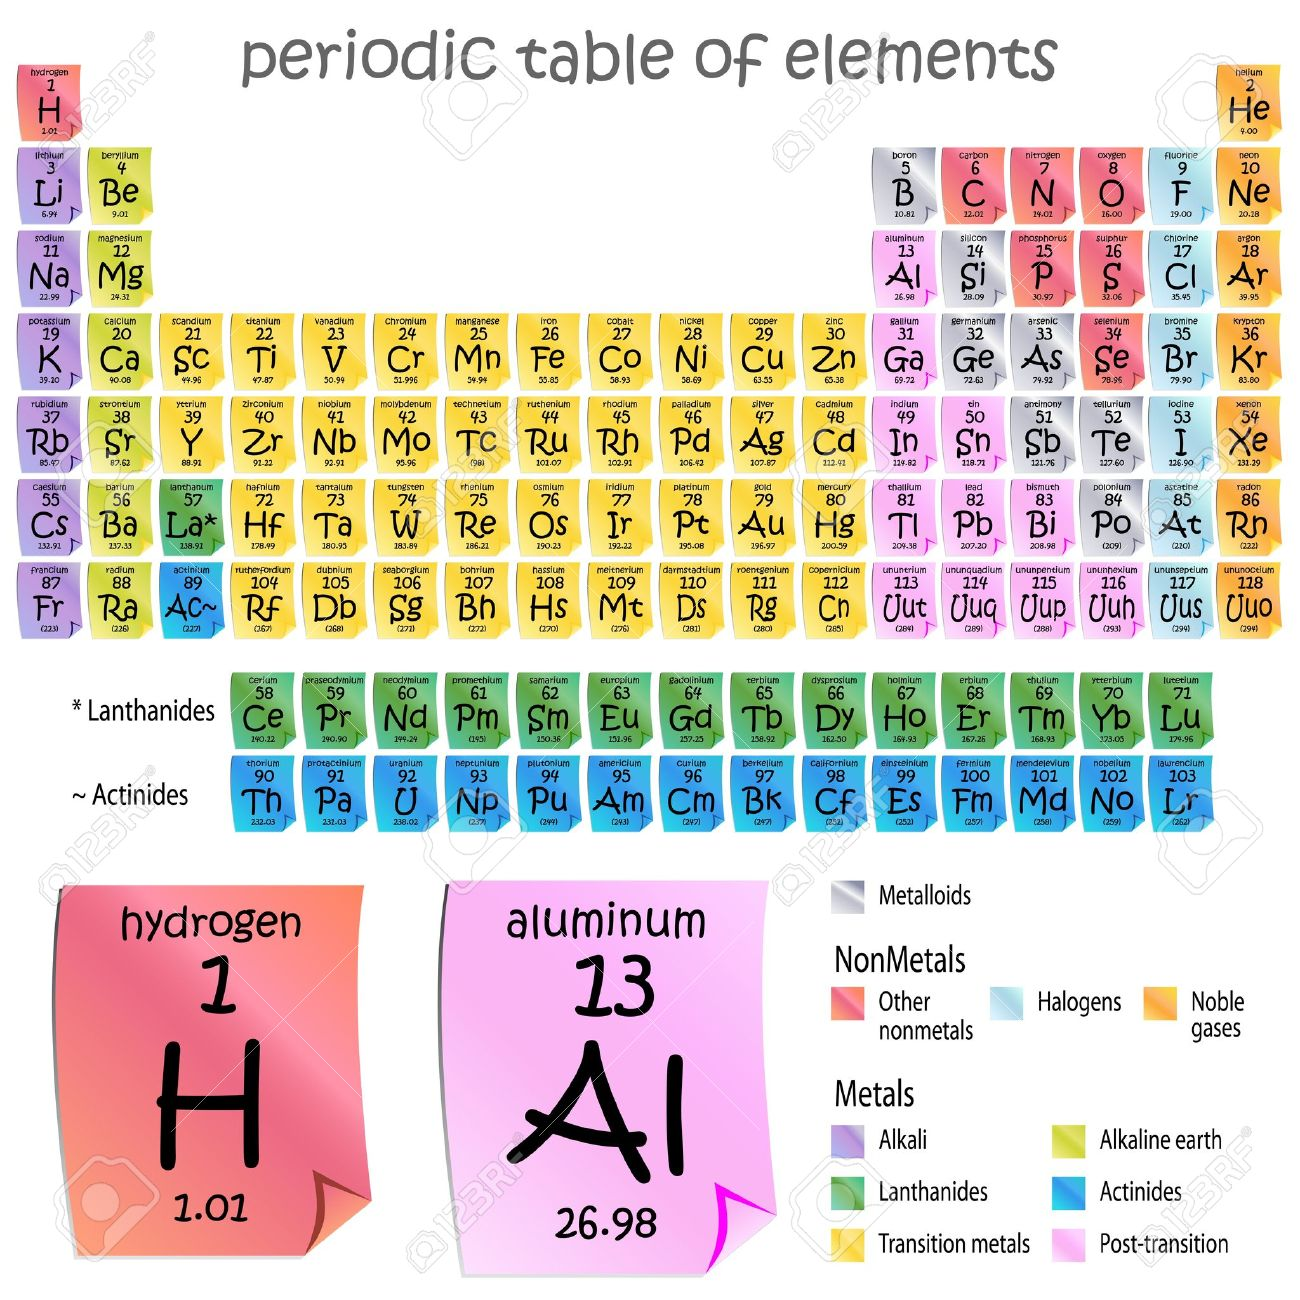 16th element on the periodic table images periodic table images 16th element on the periodic table images periodic table images what is the 16th element on gamestrikefo Gallery